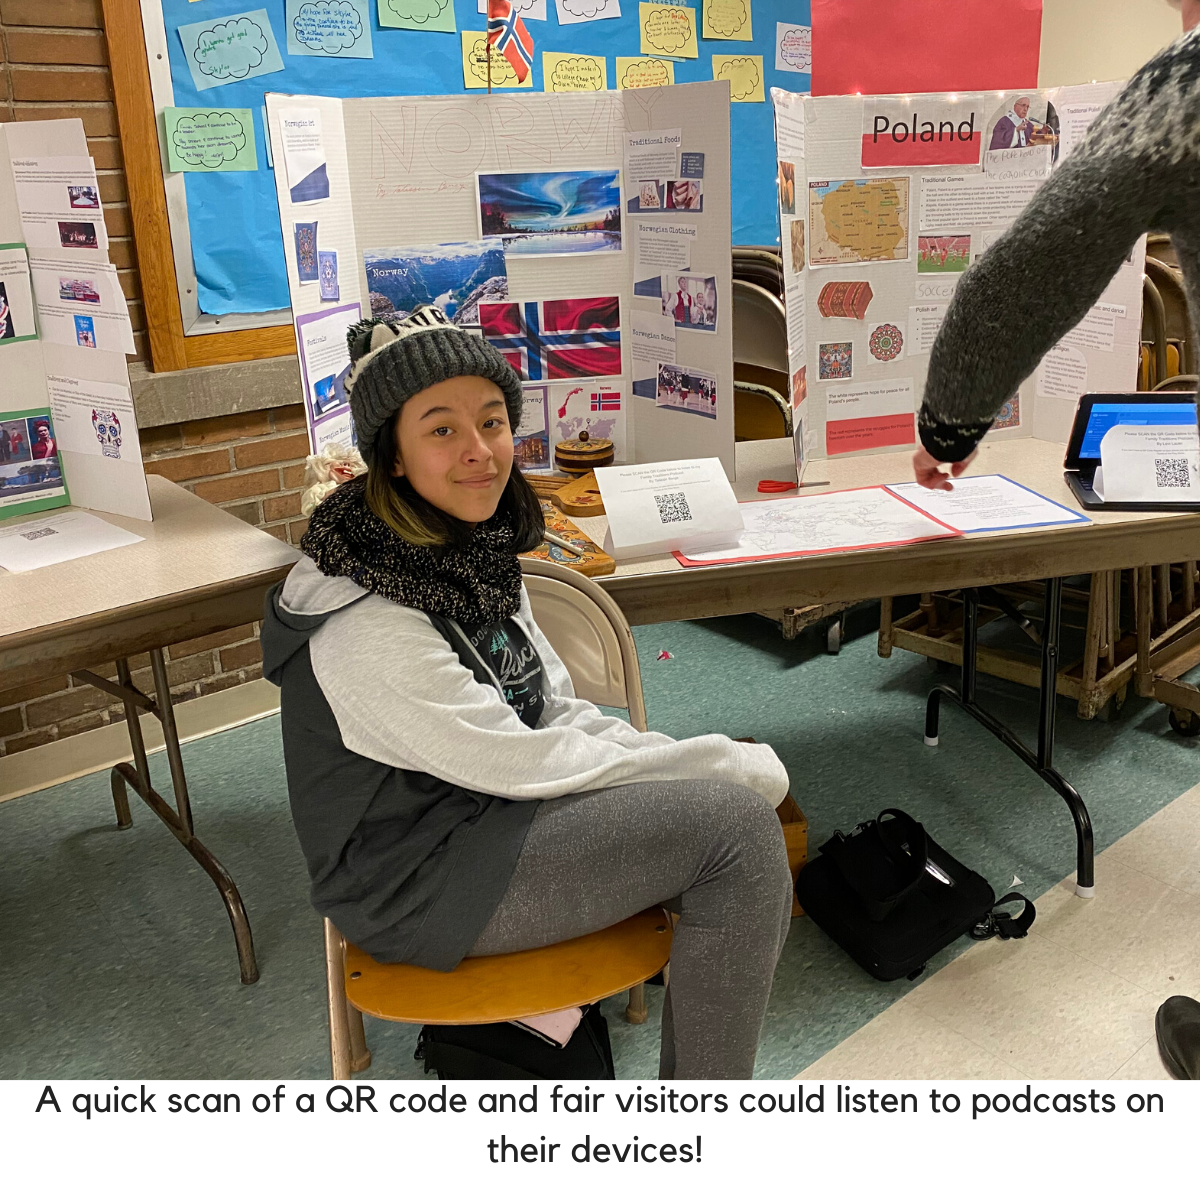 Student shows QR code for podcast listening